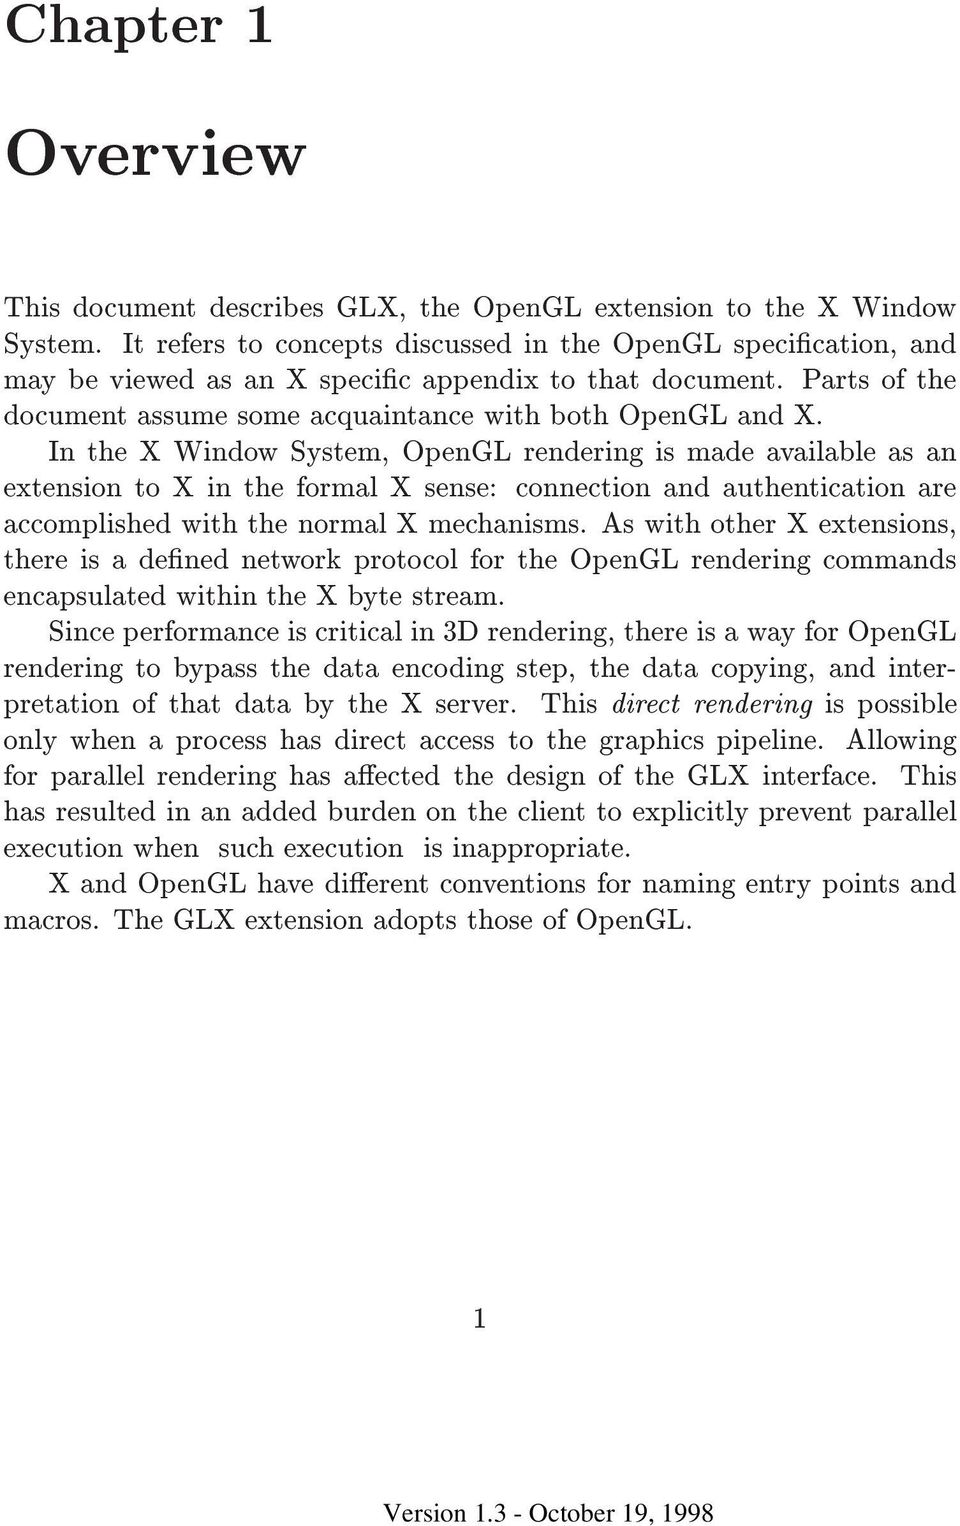 In the X Window System, OpenGL rendering is made available as an extension to X in the formal X sense: connection and authentication are accomplished with the normal X mechanisms.